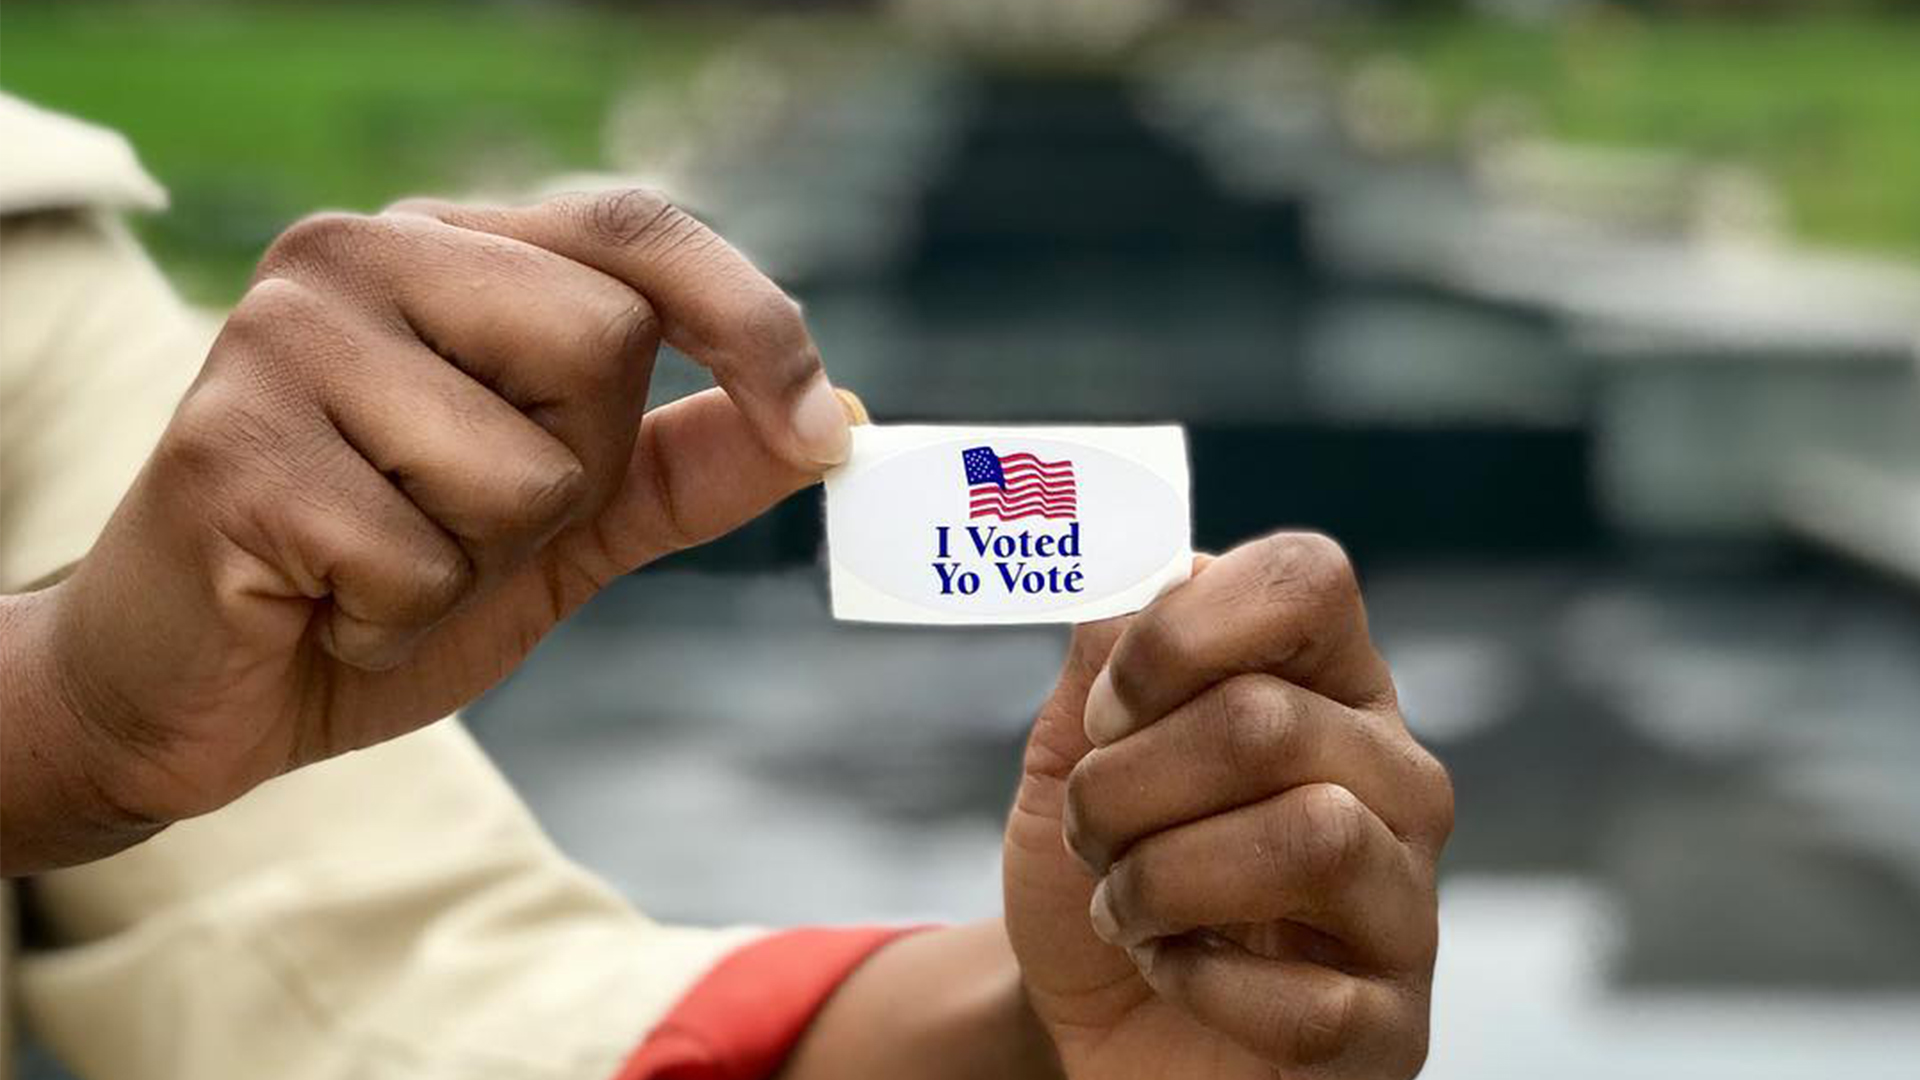 Report Shows Student Voting at UMD Doubled From 2014 to 2018 Elections